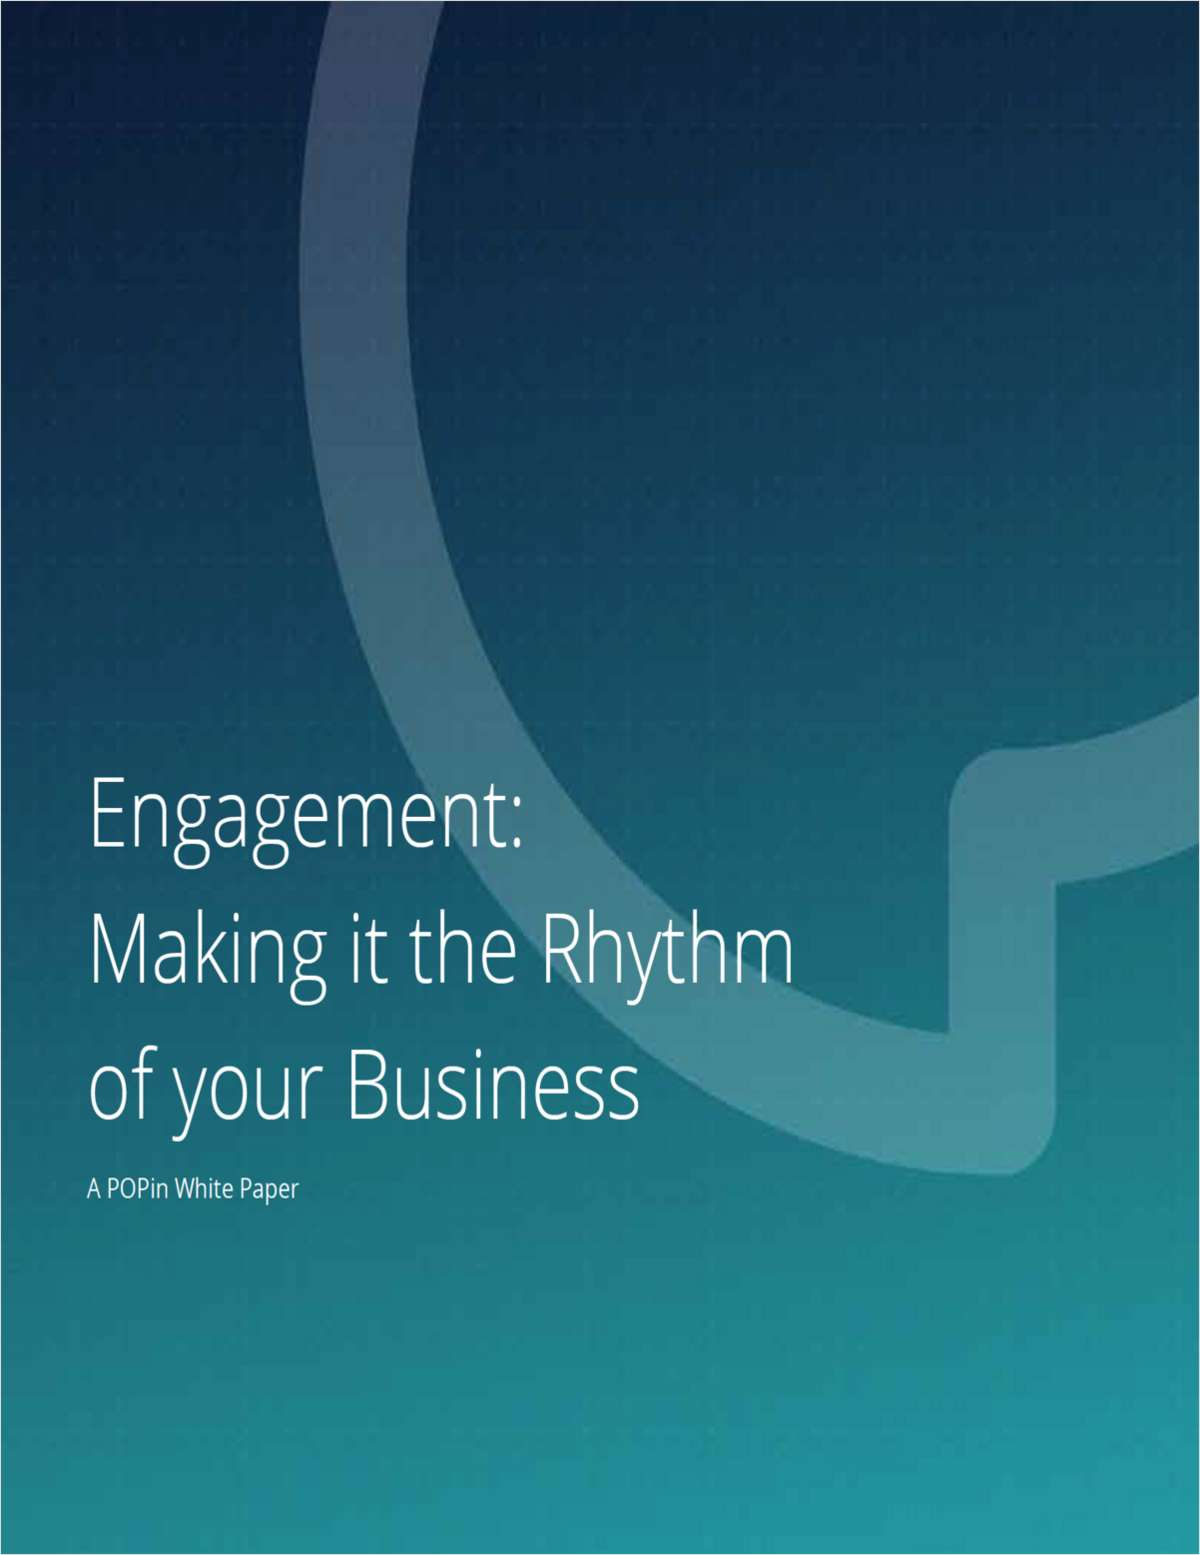 Engagement: The Rhythm of Your Business